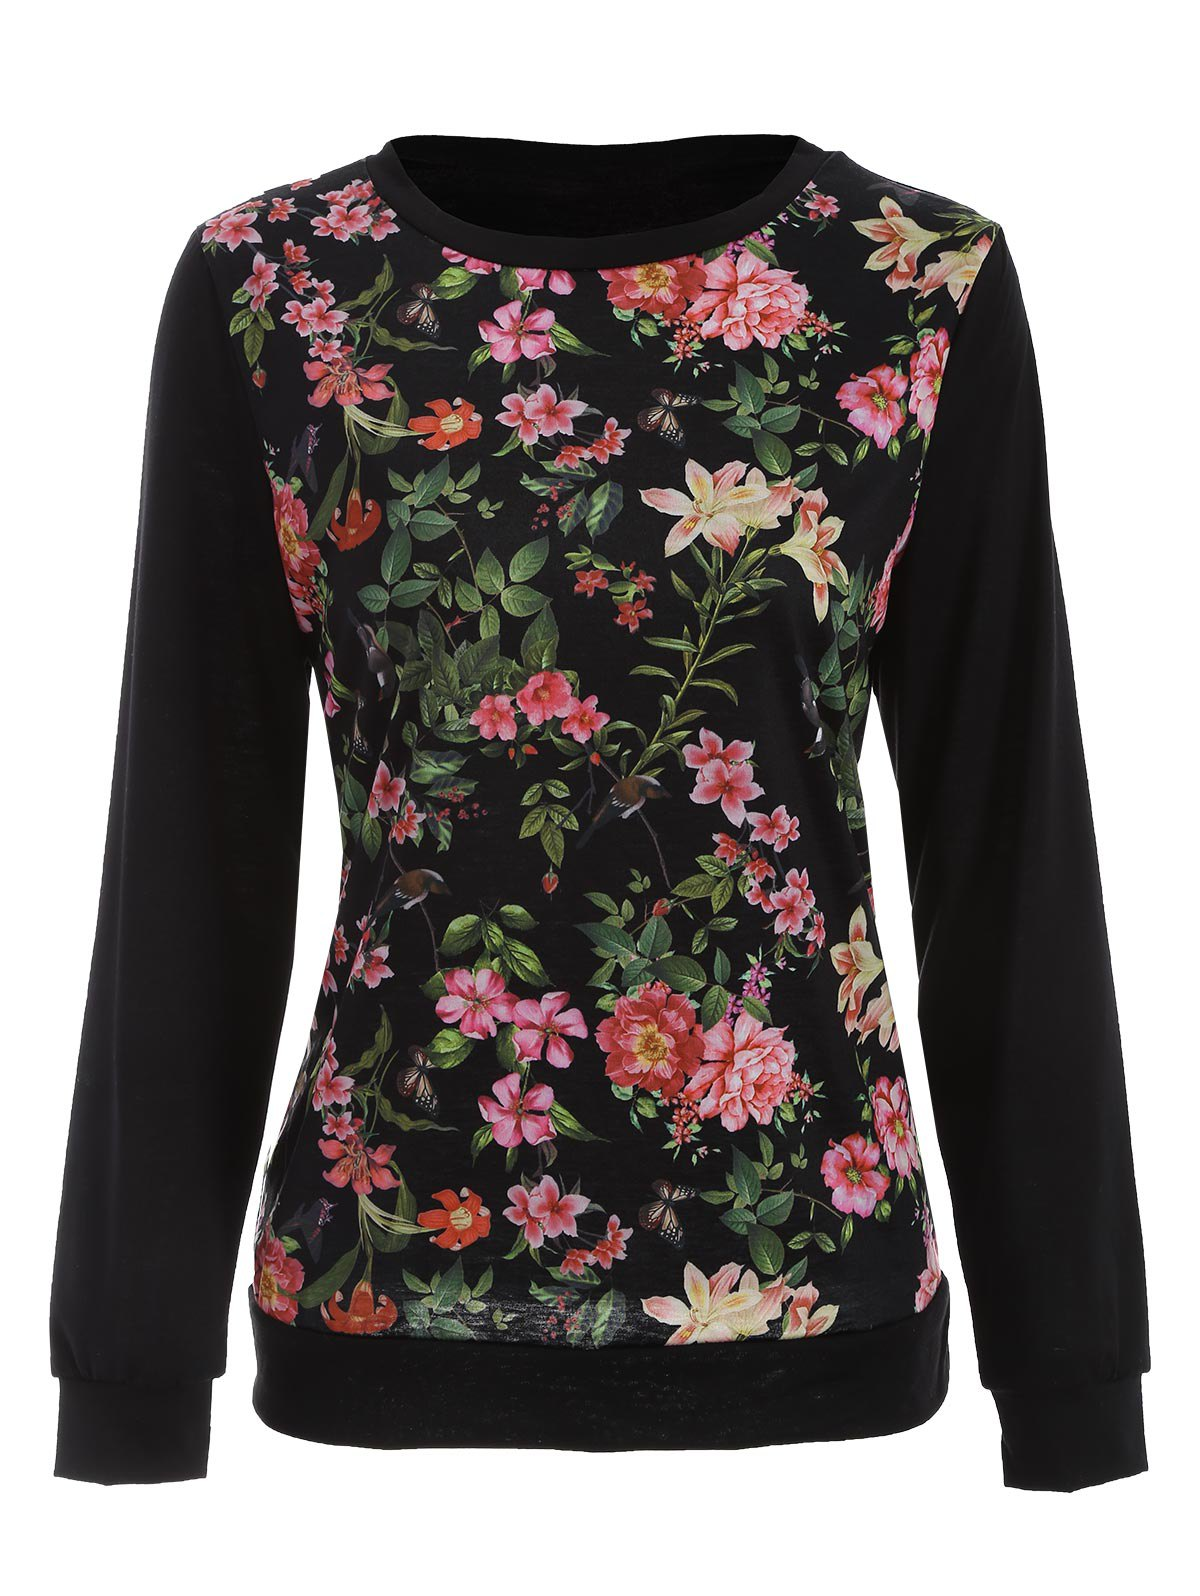 Floral Bird Print Long SLeeve T-Shirt